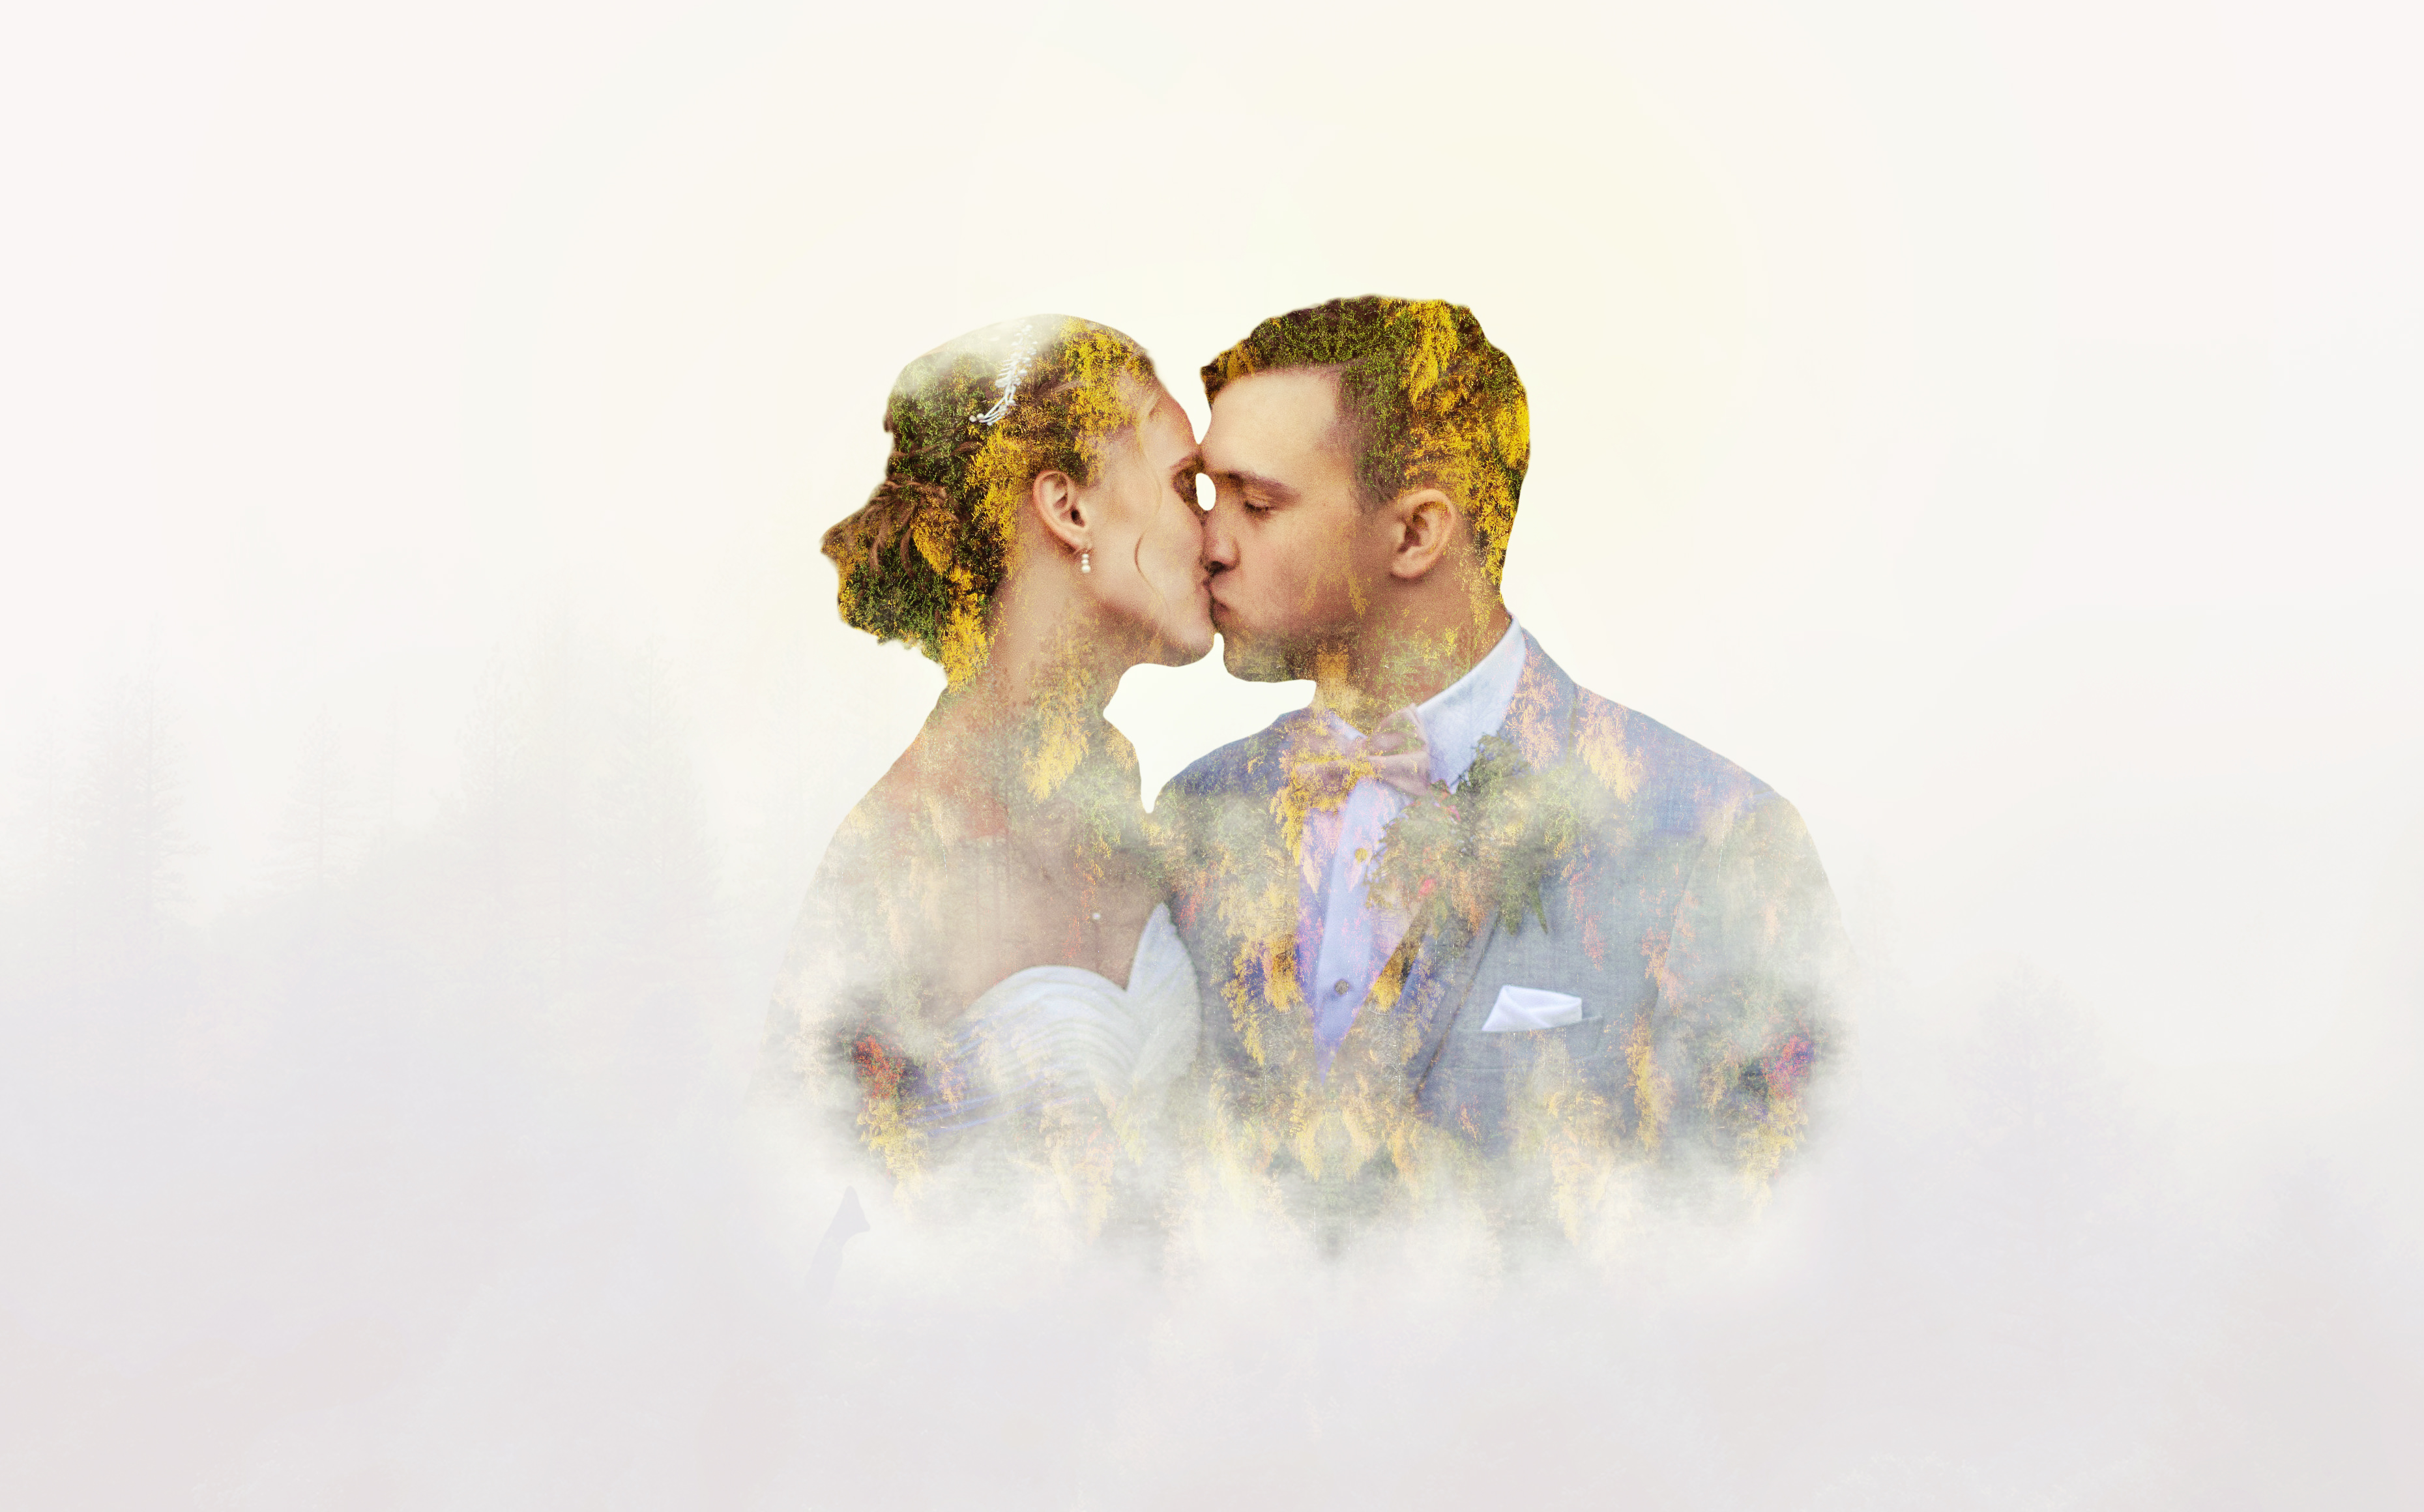 marriage, wedding, wedding ceremony, marriage, bride and groom, double exposure photo, all inclusive wedding venues new York, new west wedding venues, nyc party halls, new york style wedding reception, ann arbor wedding venues, wedding venues in Delaware, rustic wedding nyc, beach weddings in ny, upper east side wedding venue, upstate new york wedding, outdoor wedding venues in ma, new weddings, getting married at city hall nyc, cape cod wedding venues, best rooftop wedding venues nyc, catering halls in manhattan ny, new york wedding for two, wedding venues in md, best winter wedding venues new York, places to marry in new York, manhattan wedding reception venues, low budget wedding venues nyc, garden wedding venues nj, wedding ceremony new York, city wedding venues, nyc themed wedding, hamptons wedding venues, inexpensive wedding venues in ny, wedding venues york pa, can i get married in new York, new york new york wedding chapel, wedding planner nyc, small wedding dinner nyc, best hotel wedding venues nyc, destination wedding nyc, wedding venues long island ny, wedding venues catskills ny, poconos wedding venues, wedding photography new York, small event venues nyc, rustic wedding ny, winter wedding nyc, barn wedding venues ny, inexpensive wedding venues in upstate ny, best venues new York, new york themed wedding reception, non traditional wedding venues nyc, wedding new, wedding venues in northern nj, small wedding reception venues nyc, cheap wedding venues ny, new wedding venues, can you get married in new York, halls in new York, civil ceremony nyc, i want to get married in new York, private venues nyc, small wedding ceremony nyc, where can i get married in ny, wedding cost nyc, city hall marriage nyc, new york wedding venues for small weddings, small intimate wedding venues in nyc, best nyc hotels for weddings,